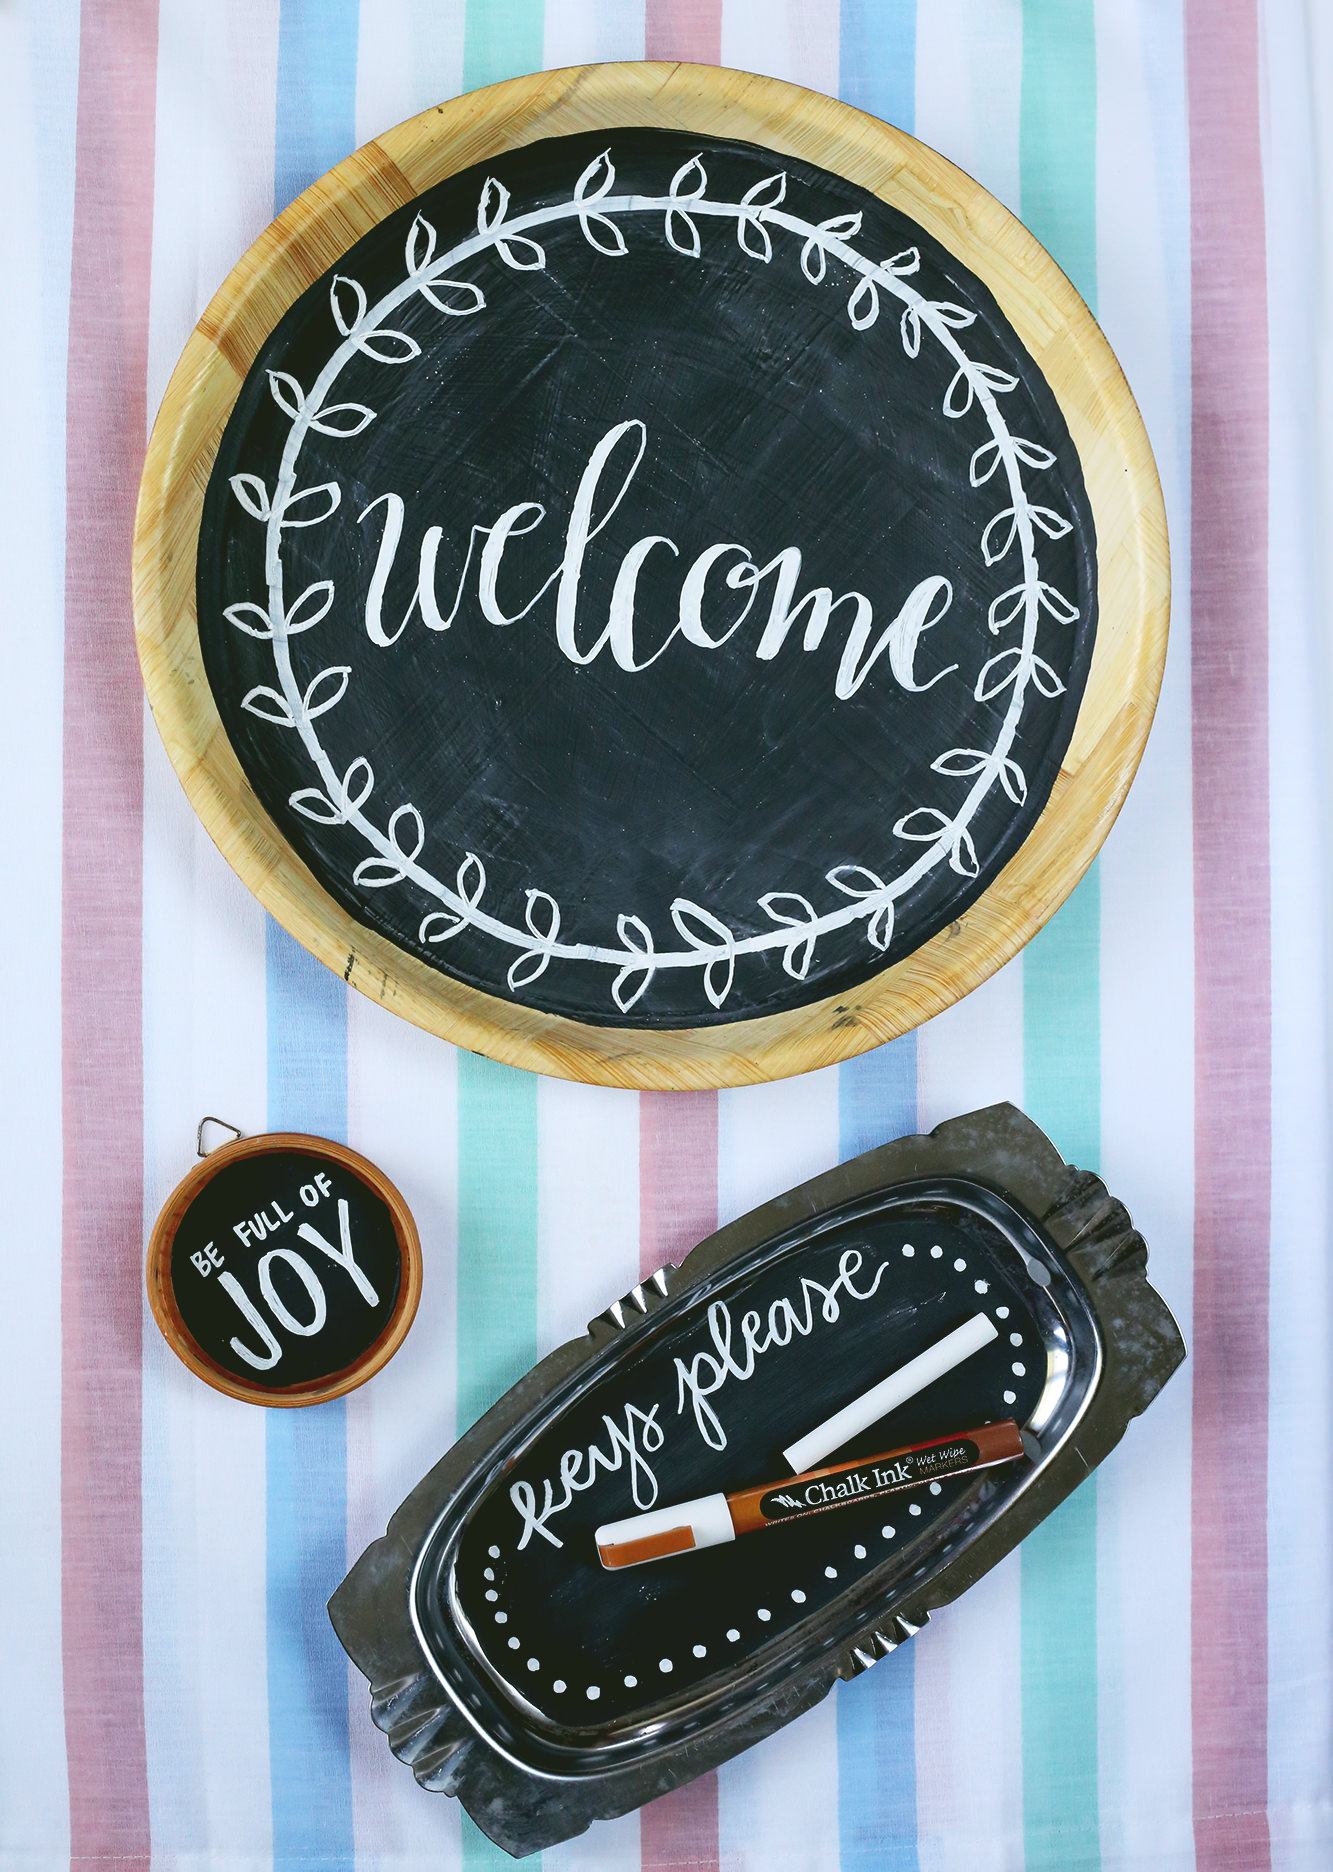 Transform thrift store finds into unique chalkboards for your home decor